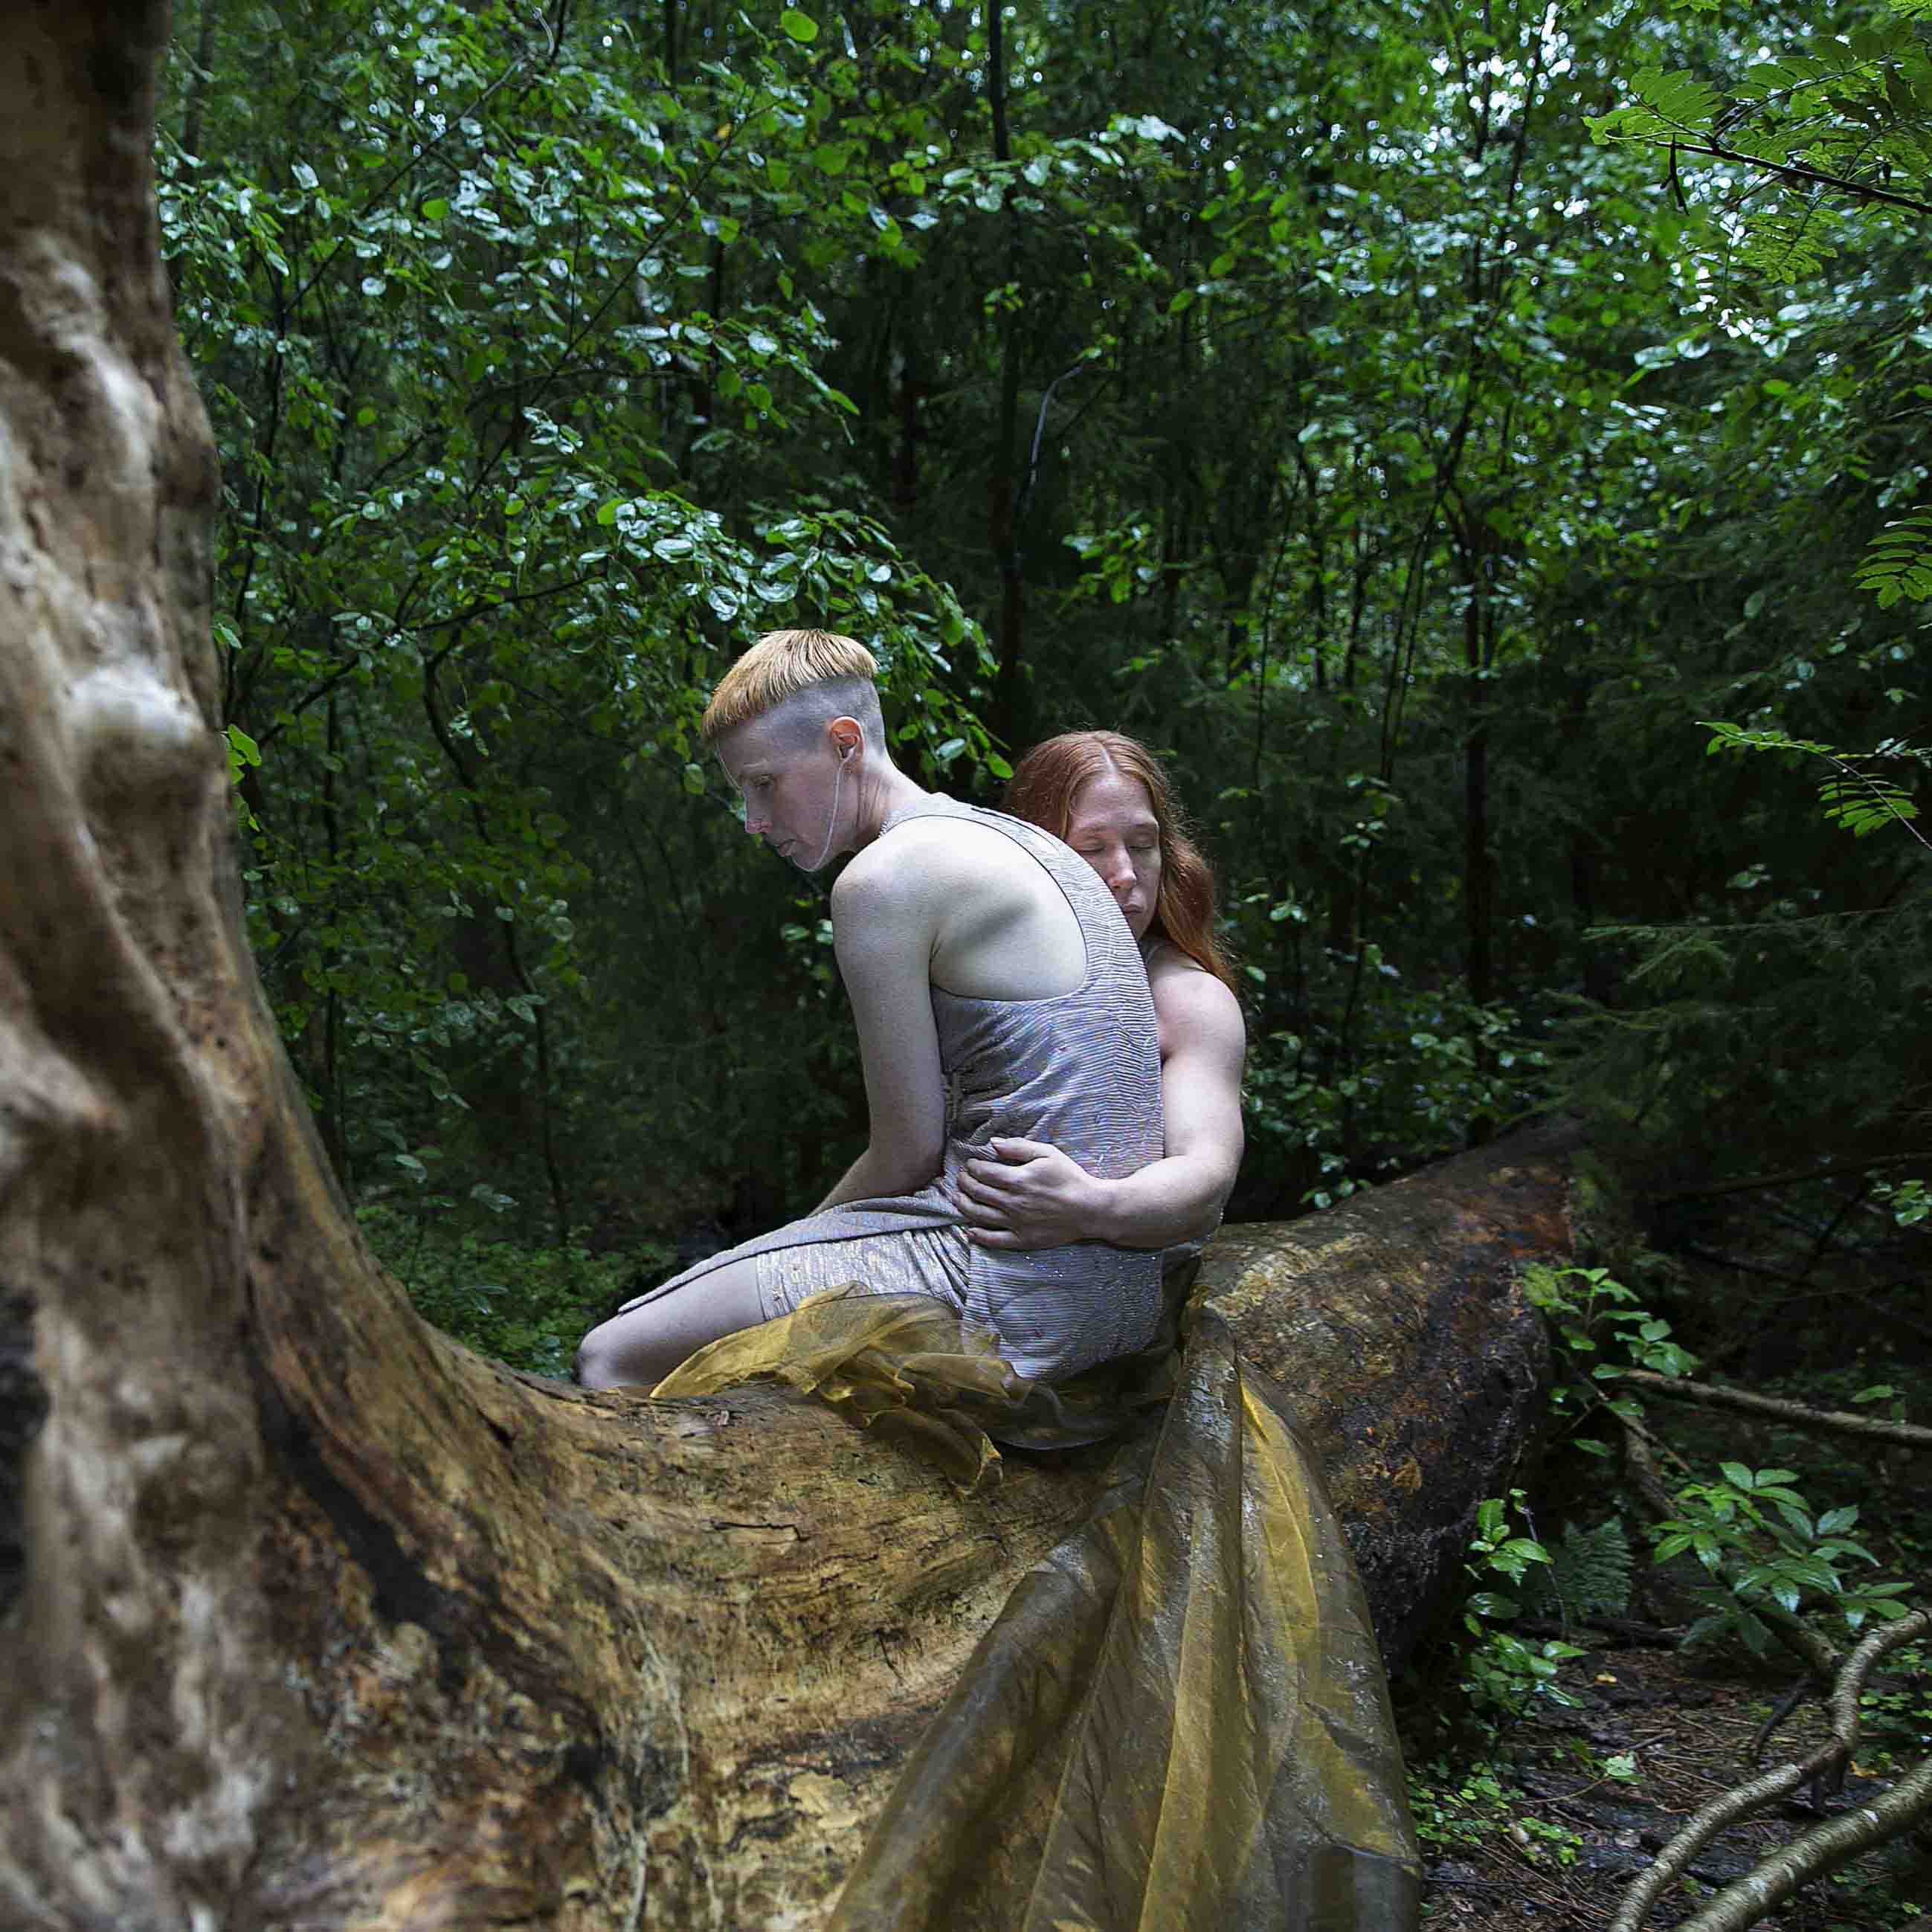 Image for the performance Hannah Felicia. The image depicts the dancers sitting on a tree that's toppled over, stretching into the picture. On the tree is a golden piece of cloth. Hannah sits in profile towards the left, behind her Felicia sits holding her arm around Hannah. Photo: Anna Ósk Erlingsdóttir